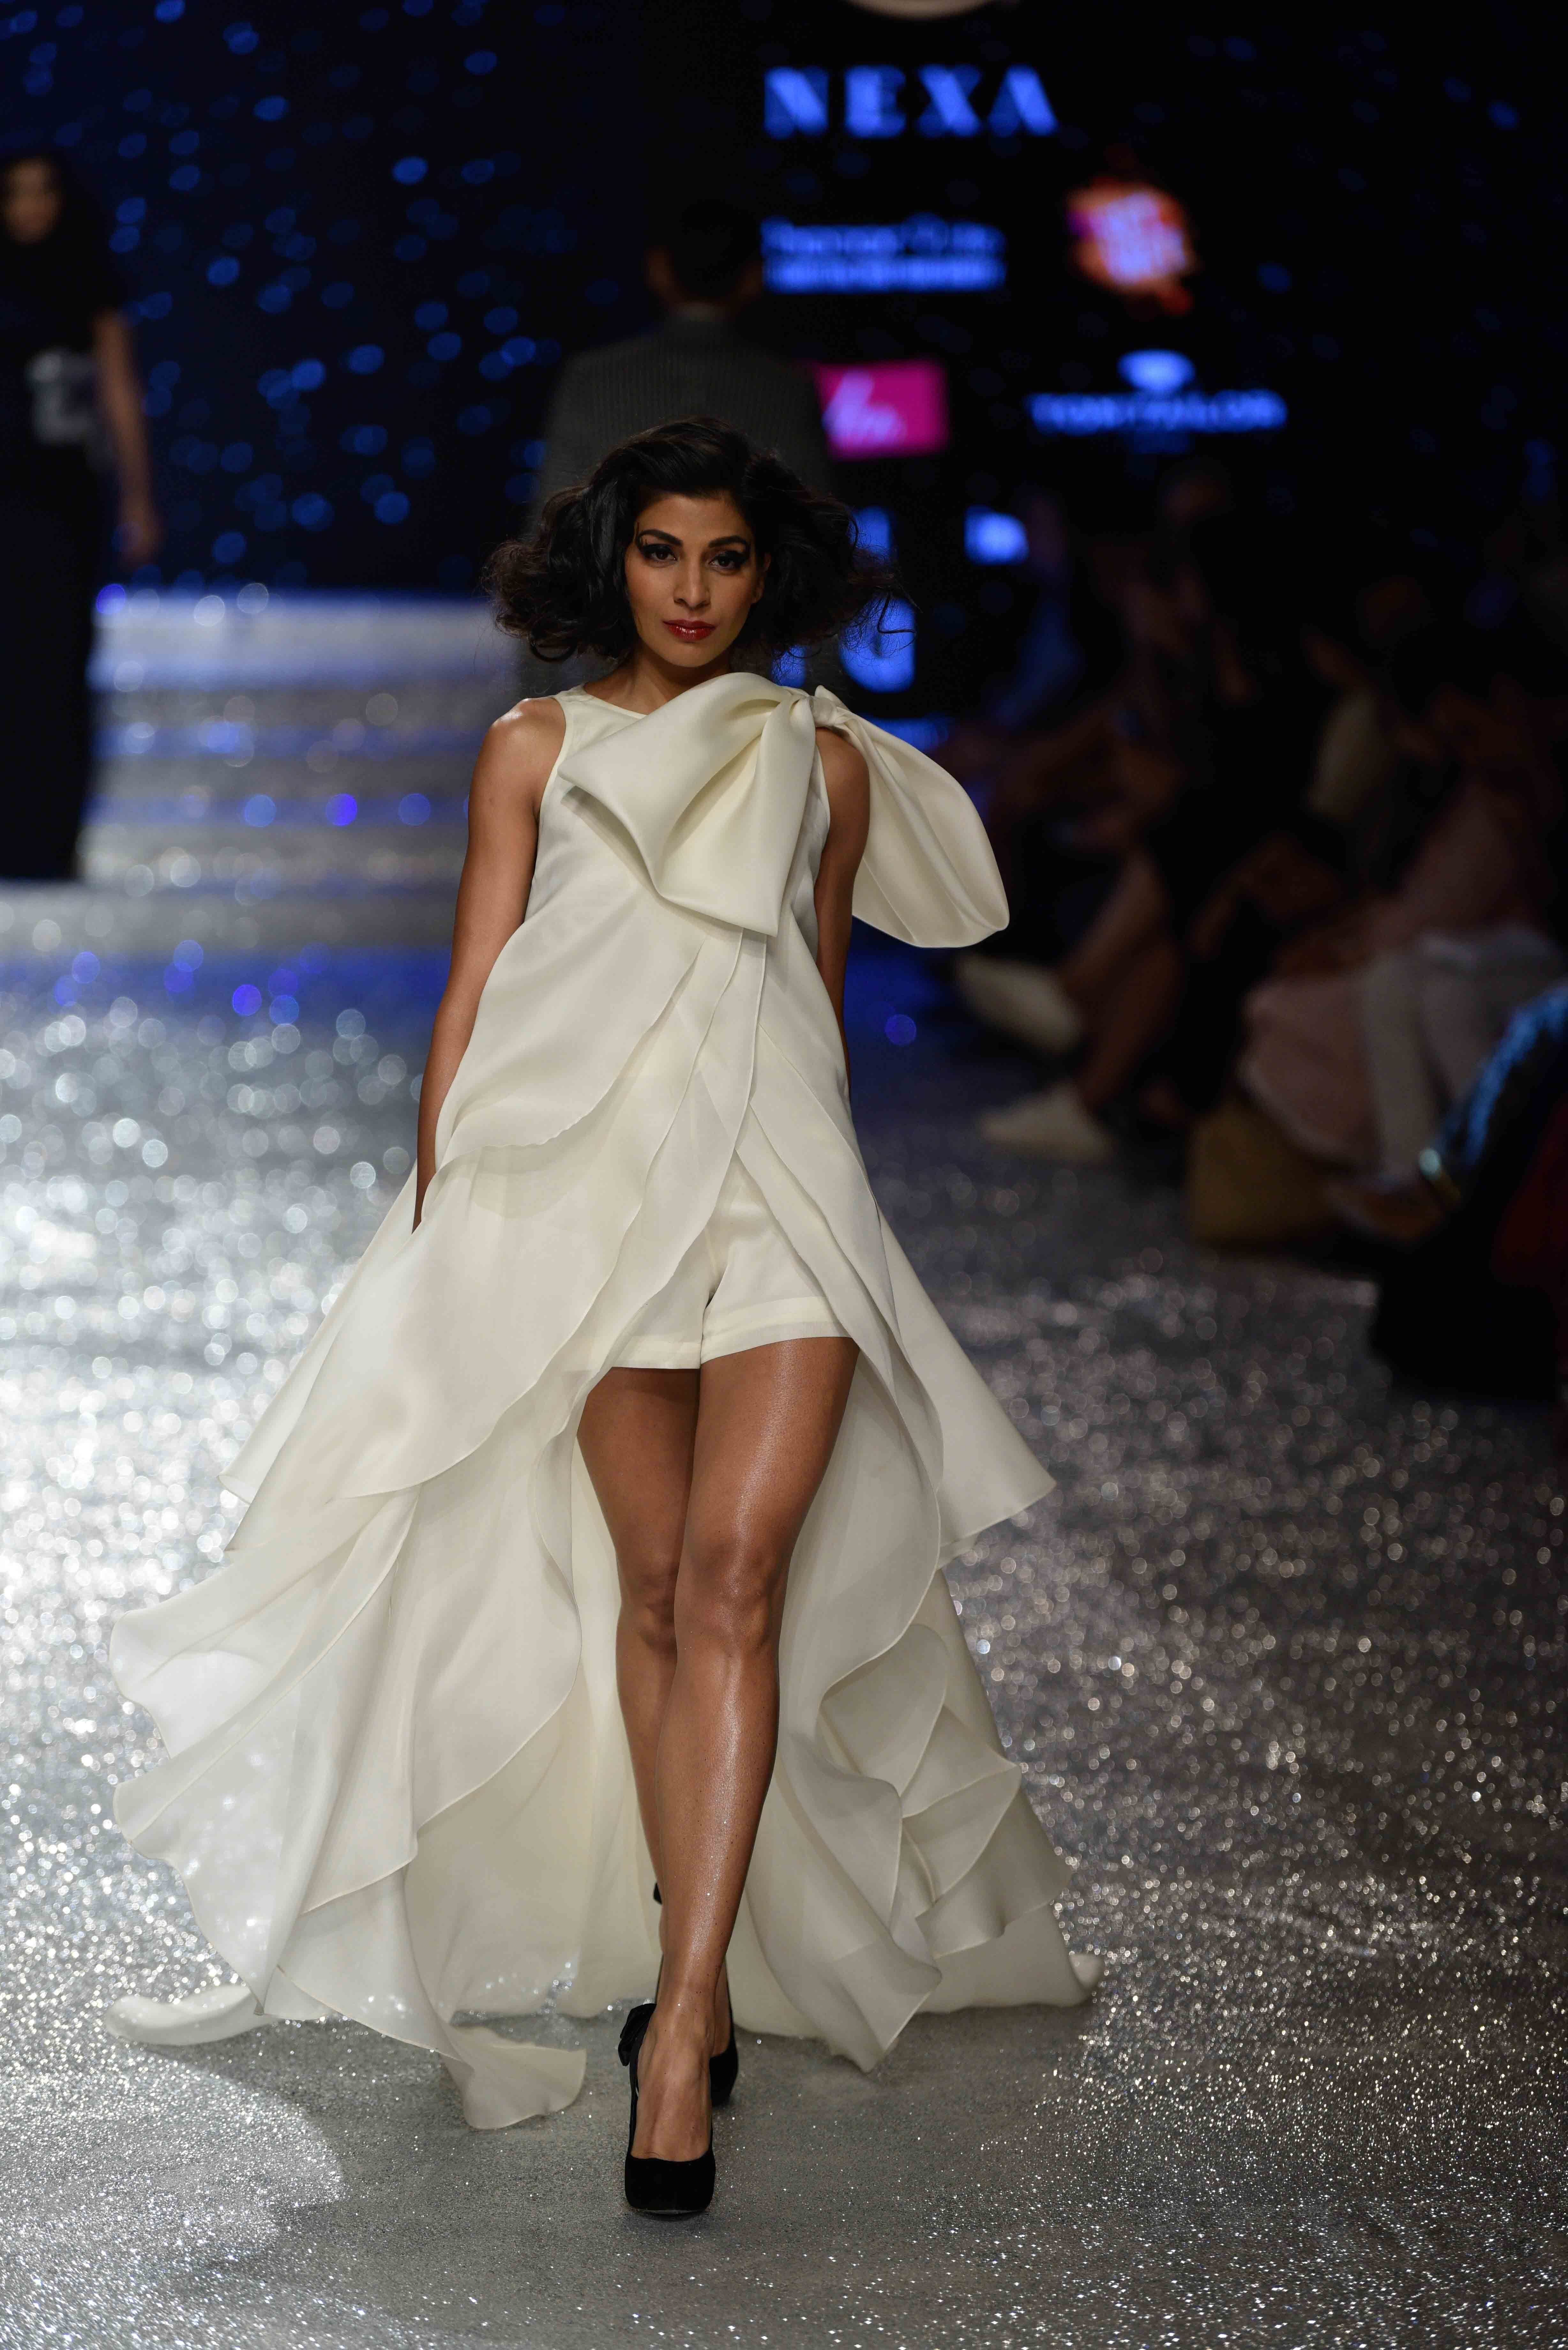 Gauri Nainika Ashish N Soni At Amazon India Fashion Week Autumn Winter 2018 India Fashion Week Fashion Week Fashion